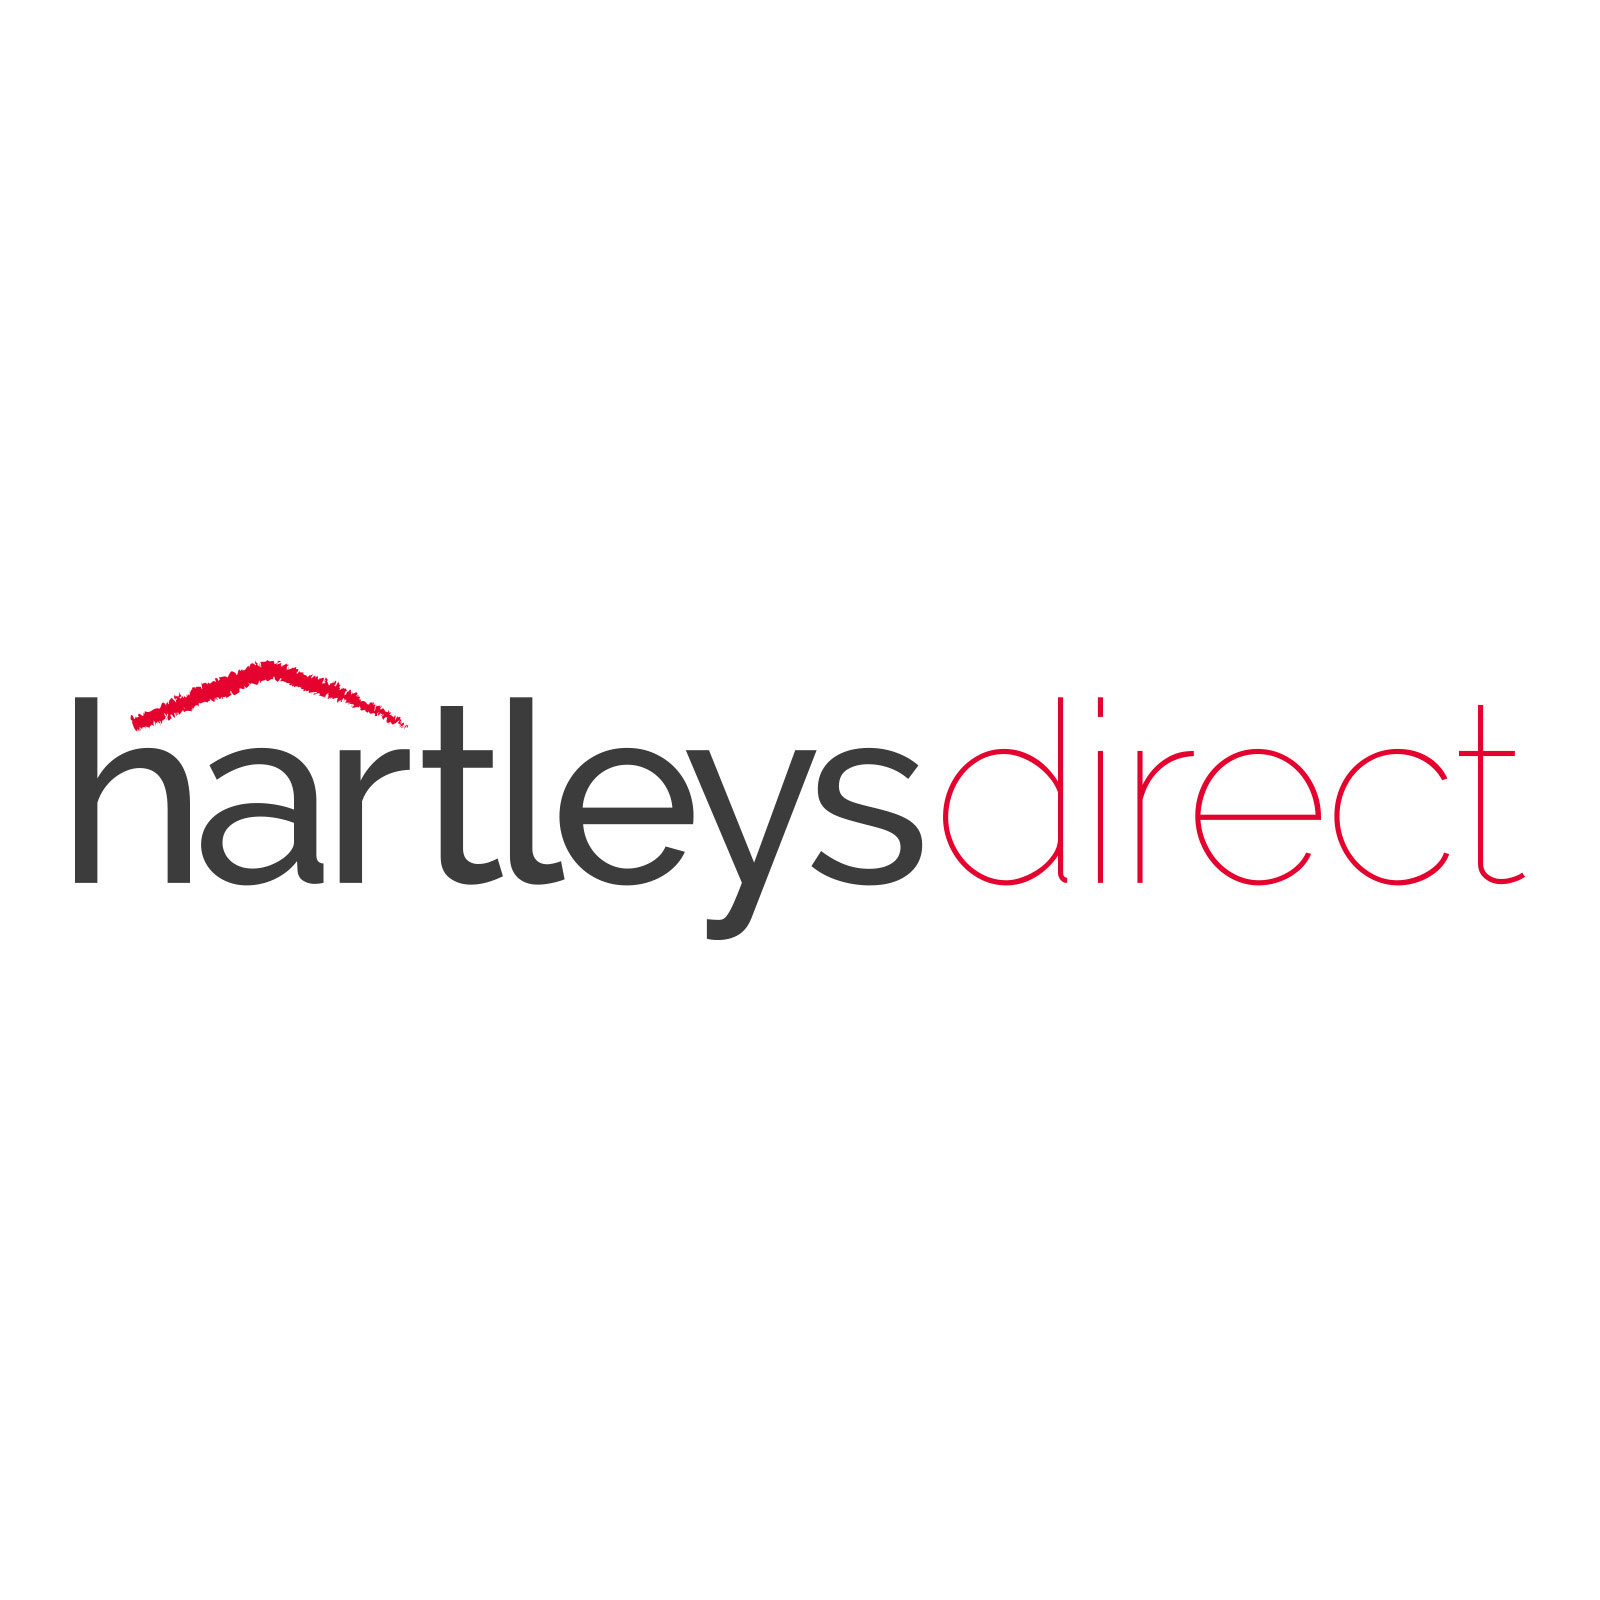 Hartleys-Black-6-Cube-Unit-with-3-Pink-Cubes-with-Home-Accessories-on-a-White-Background.jpg